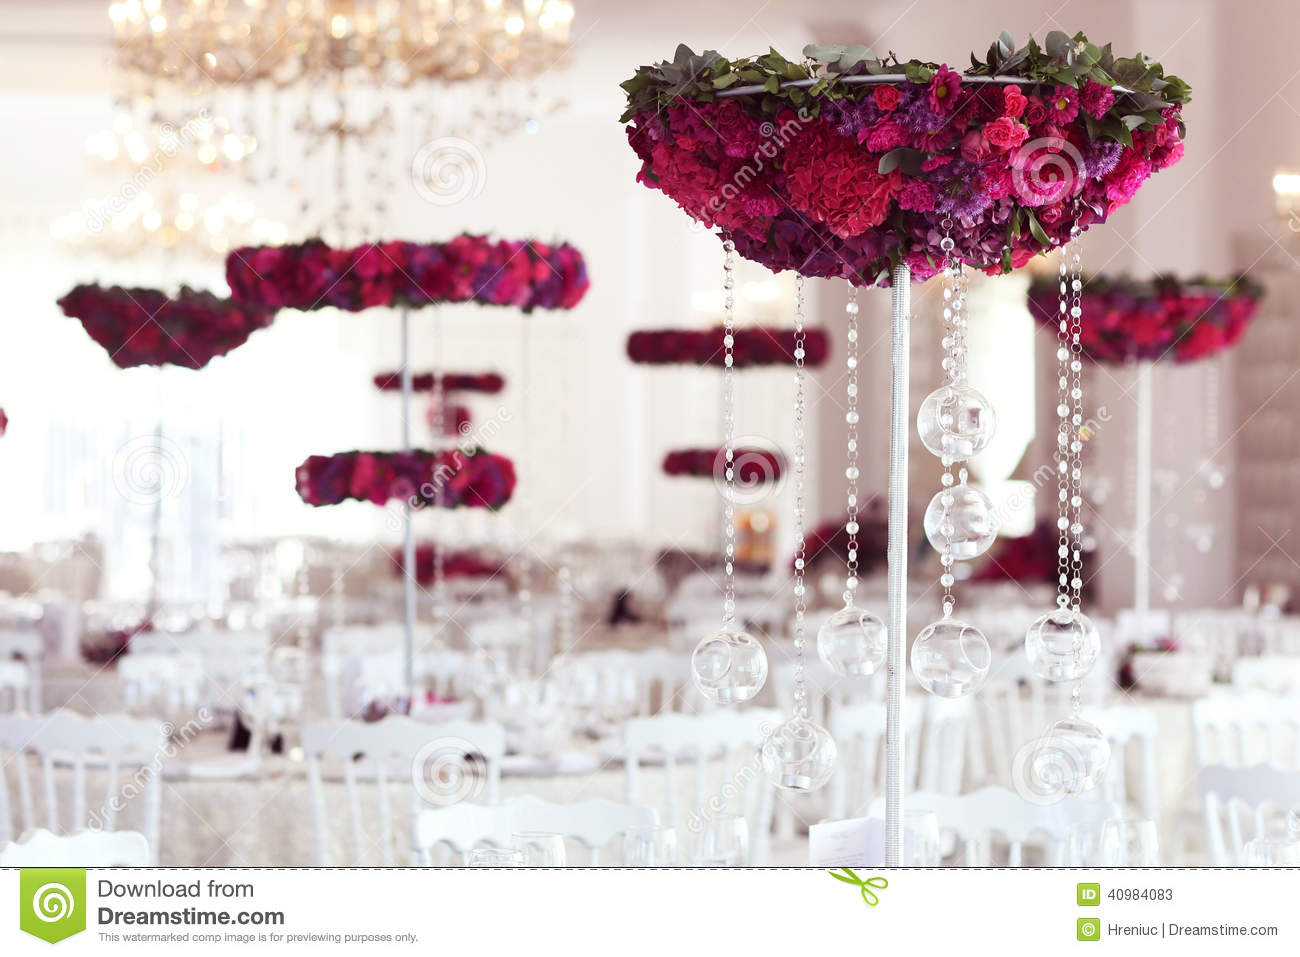 Beautiful flowers on wedding table decoration arrangement stock image image 40984083 for Decoration image